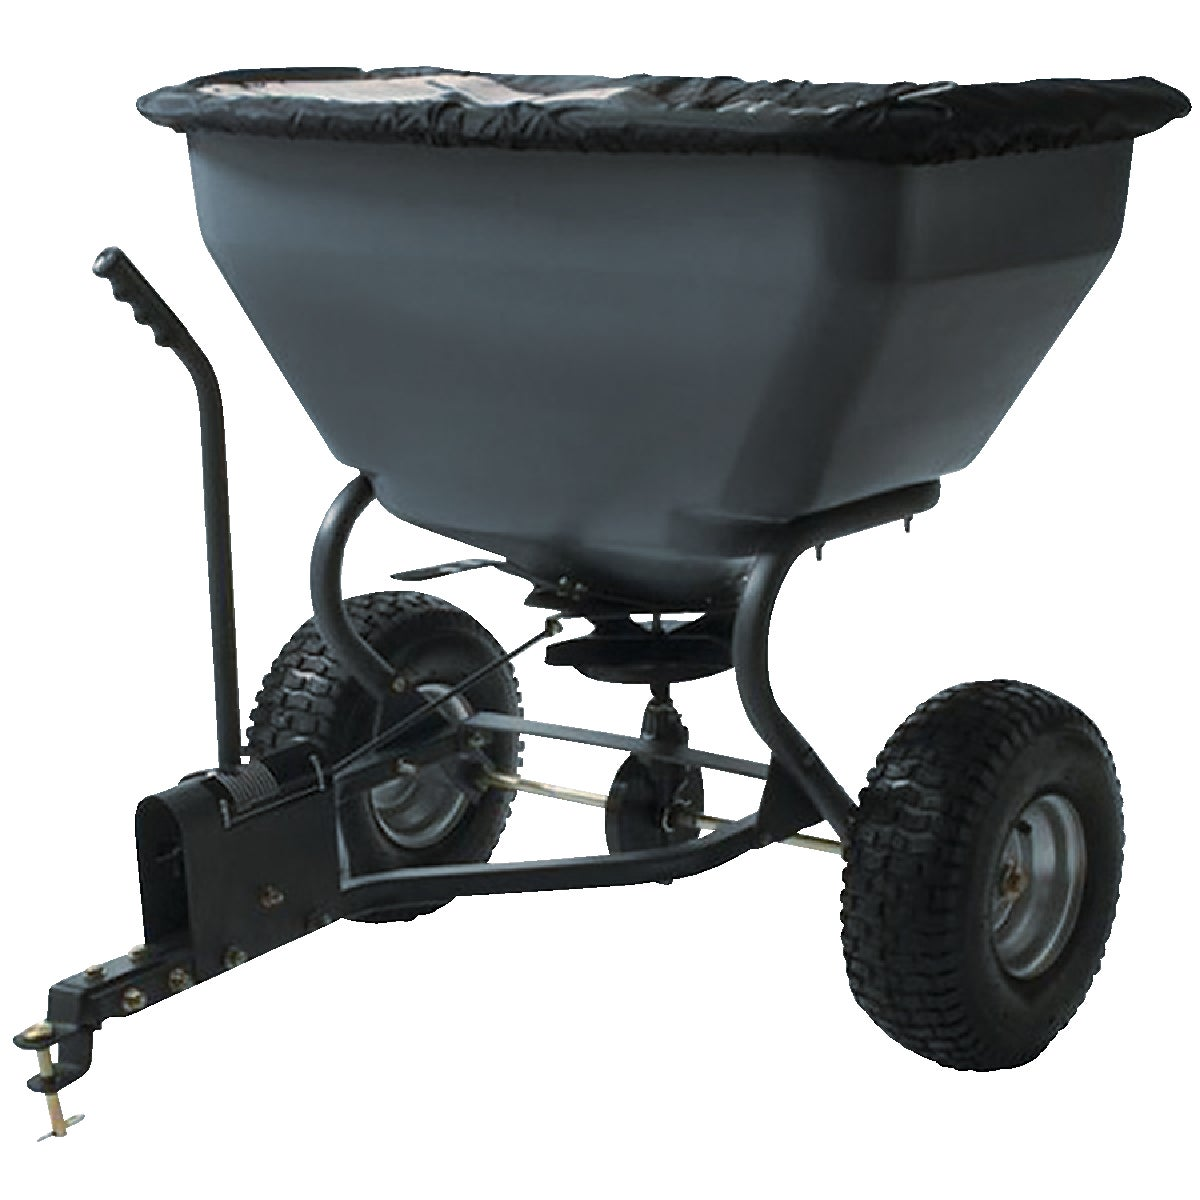 200LB ATV TOW SPREADER - TBS7000RDOS by Precision Prod Inc